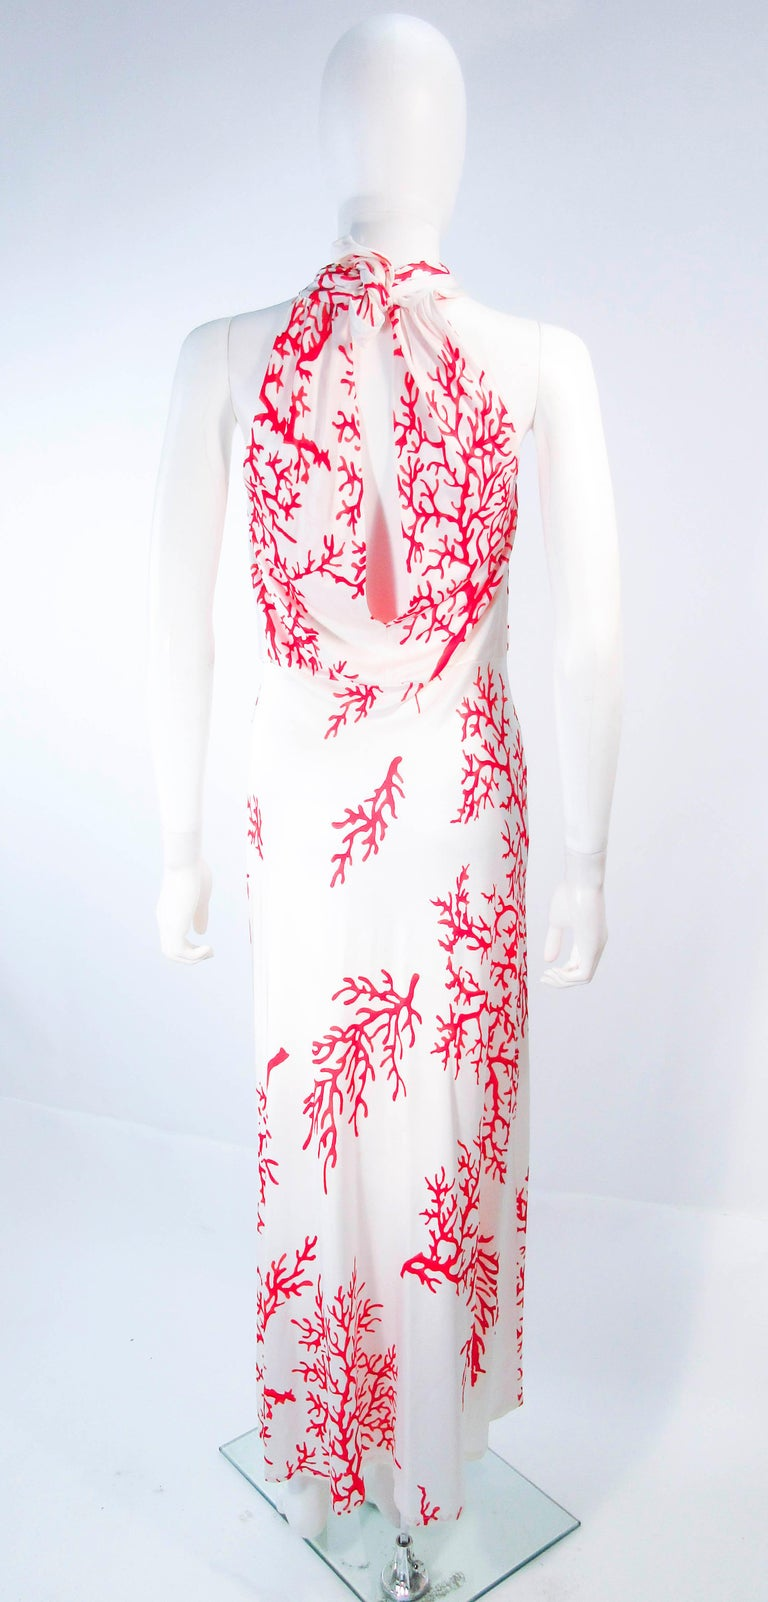 VALENTINO White with Red Coral Pattern Criss Cross Jersey Halter Dress Size 42 For Sale 5